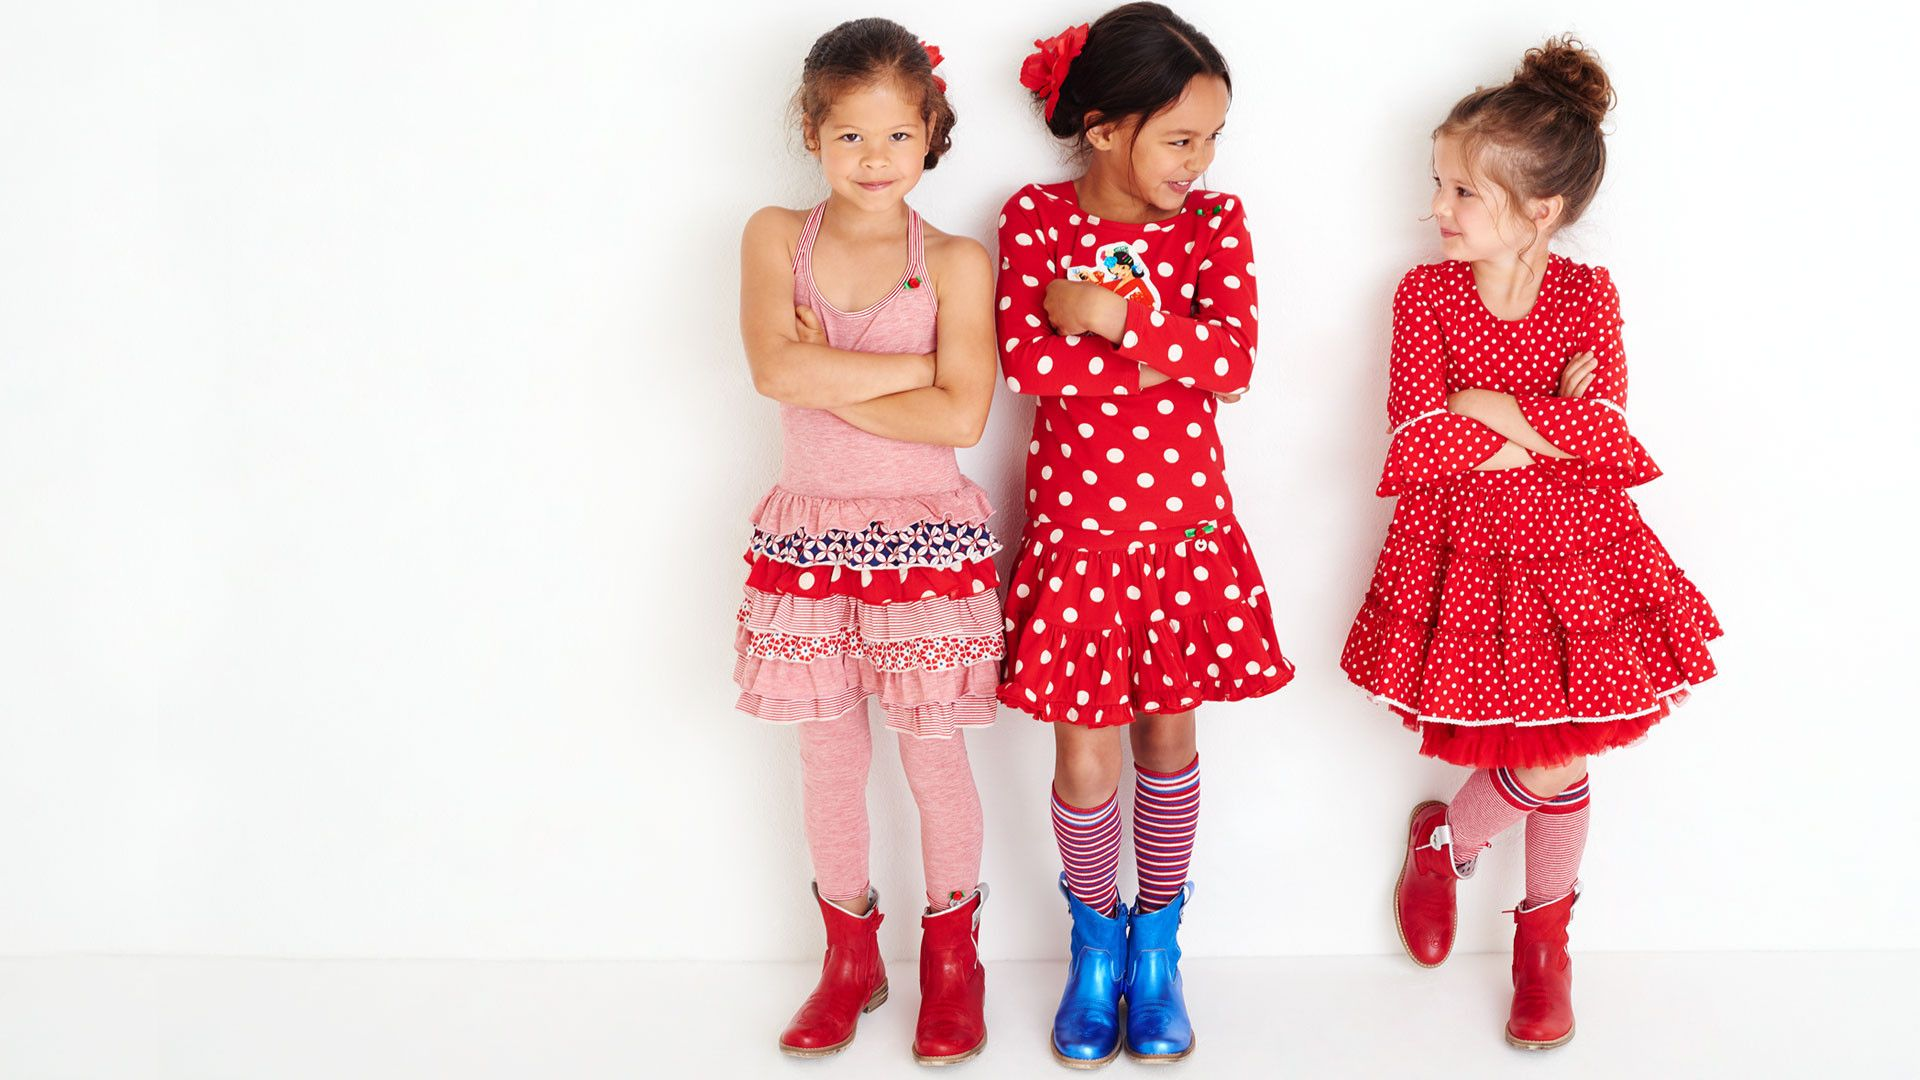 ole! gorgeous spanish inspired collection from mim-pi #ss2017 #mimpi #red #polkadots #dresses